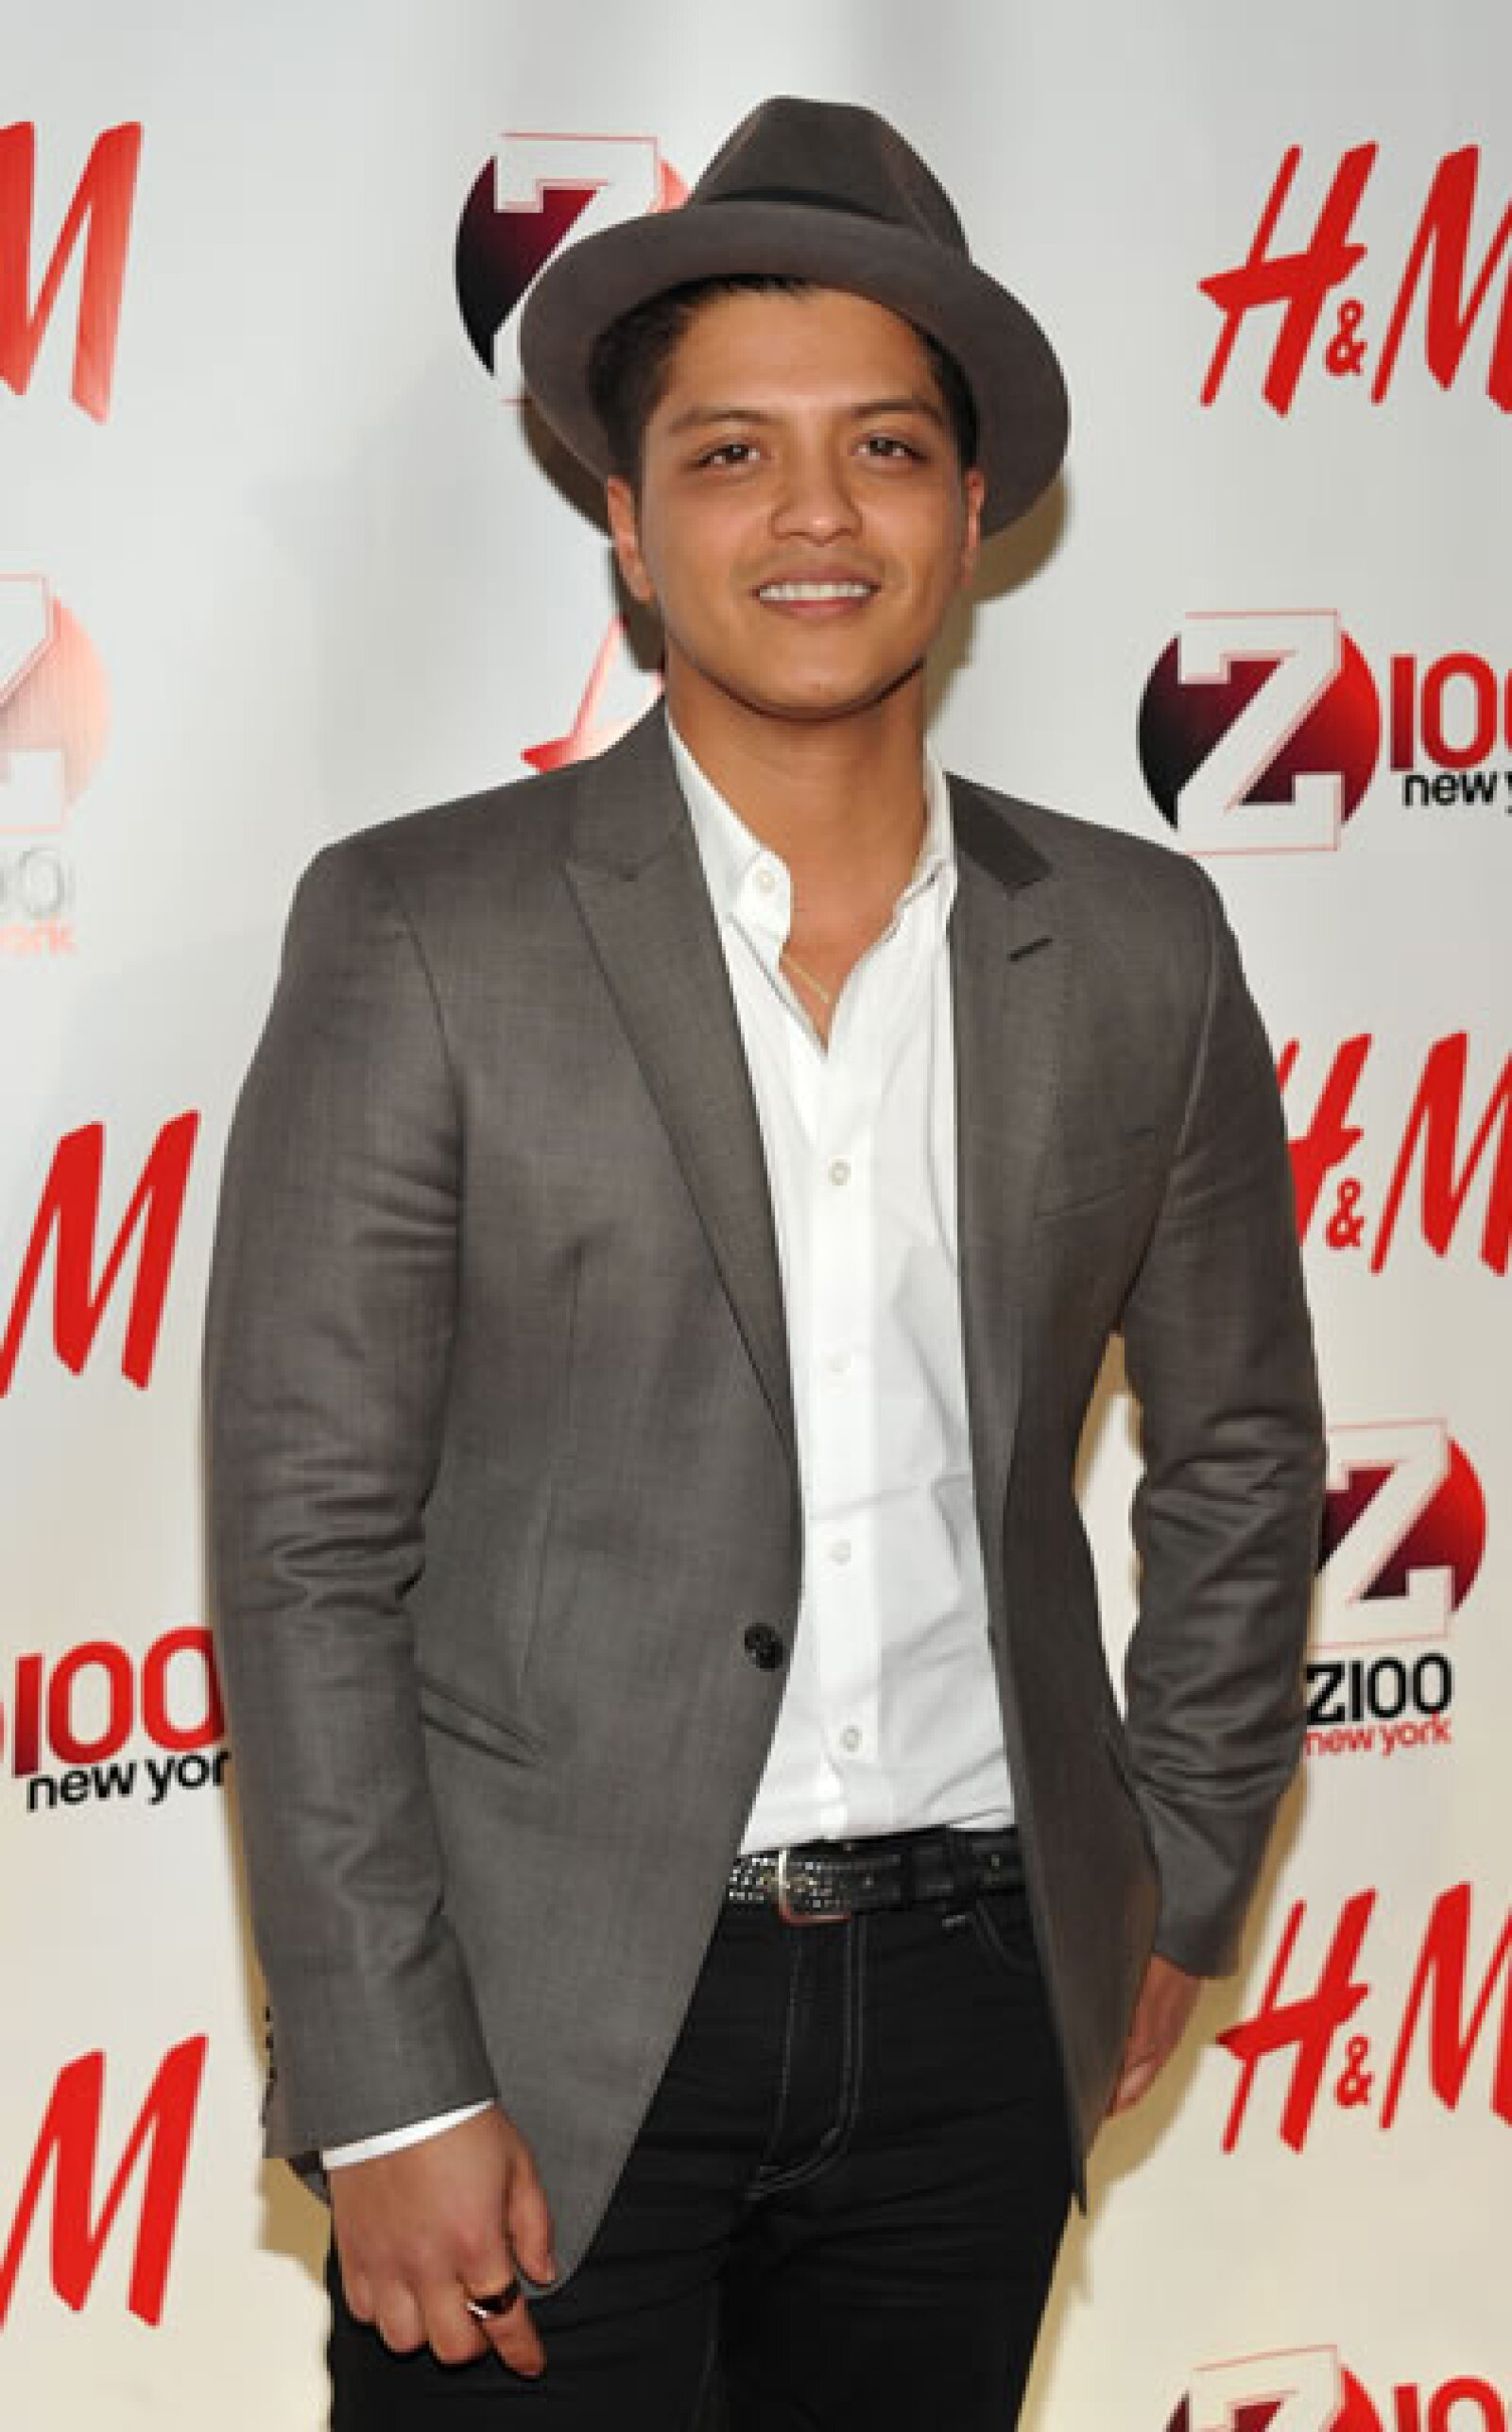 Bruno Mars suena en todo el mundo: sus éxitos `Beautiful girls´ y `Just the way you are´ son tan famosos que este último ya apareció en una capítulo de `Glee´.